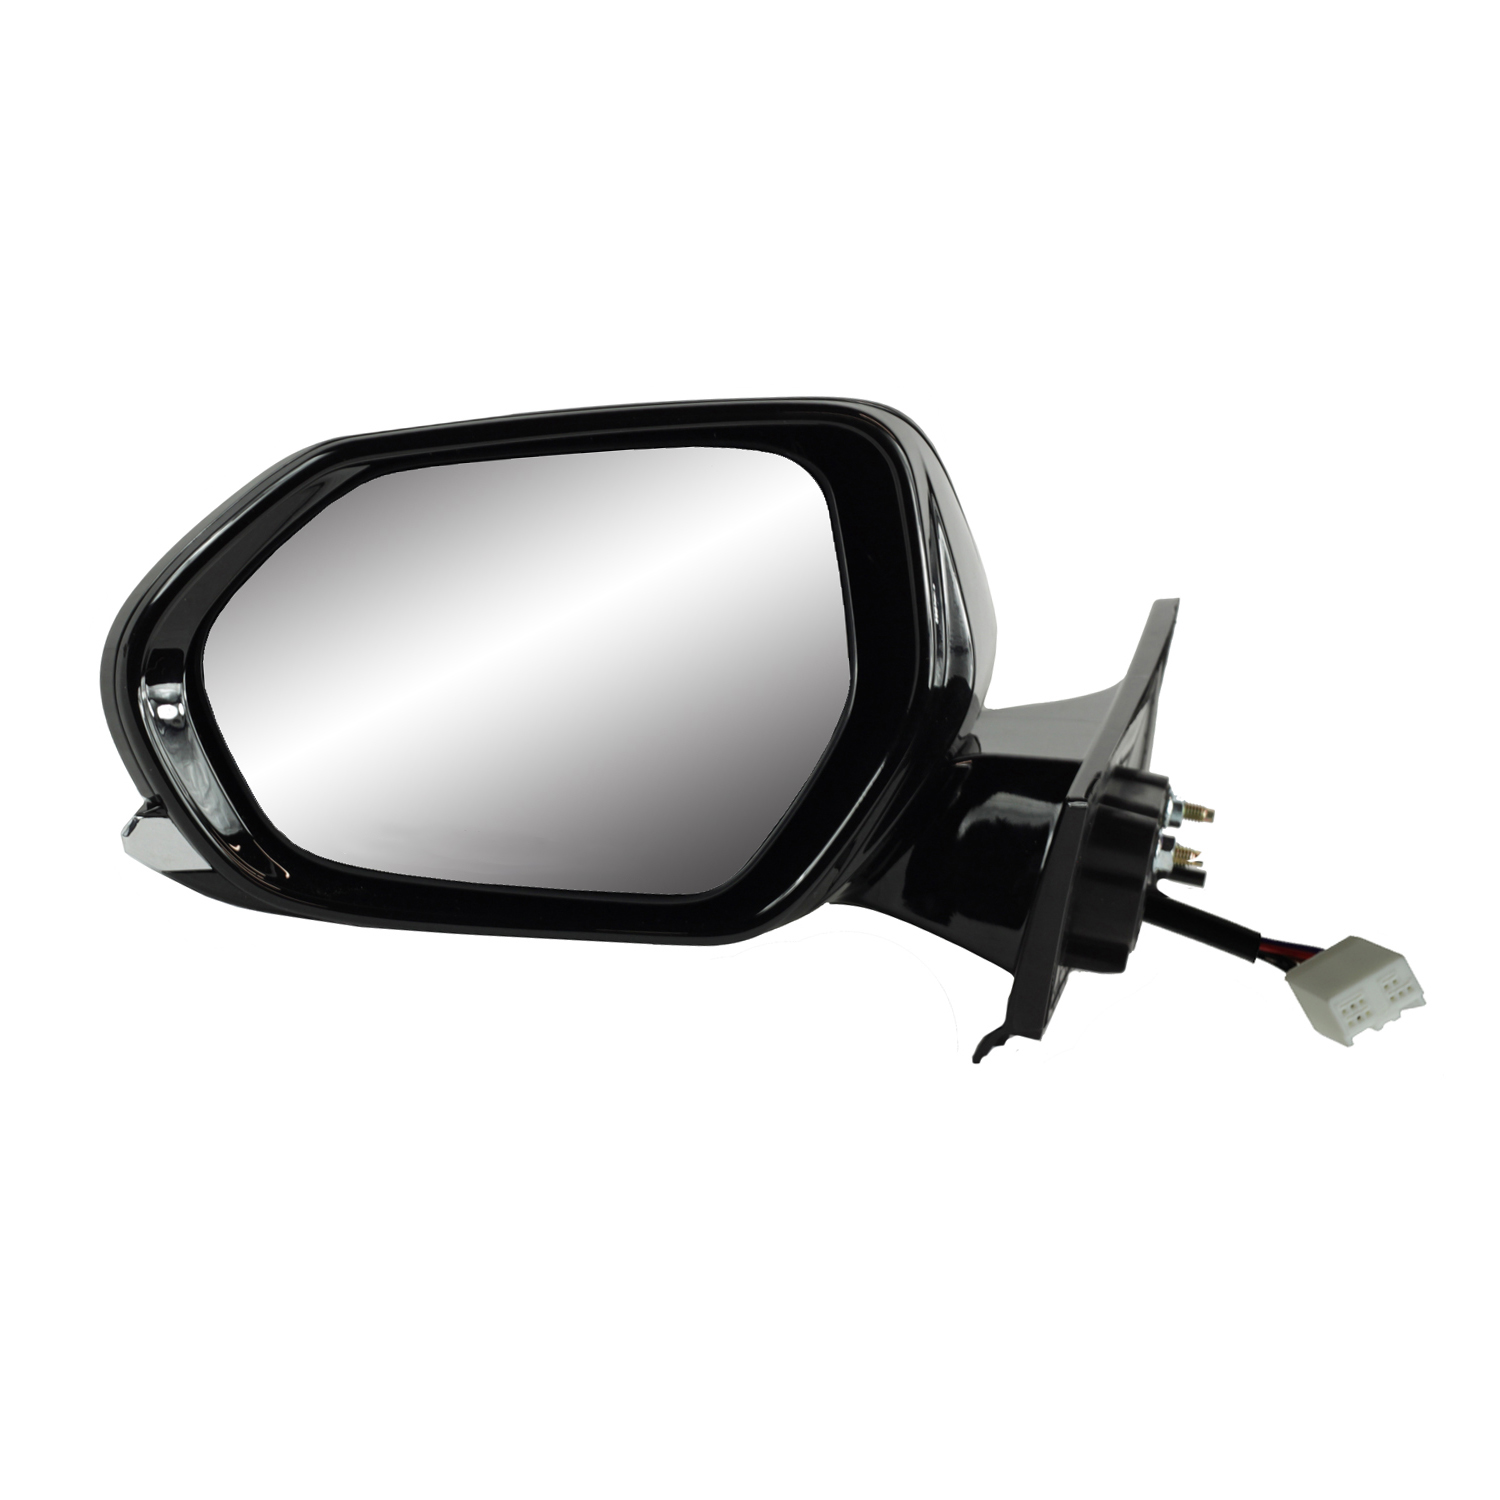 Heated Power Foldaway Does not Apply to Prius C Hatchback Fit System Driver Side Mirror for Toyota Prius Hatchback Black w//PTM Cover